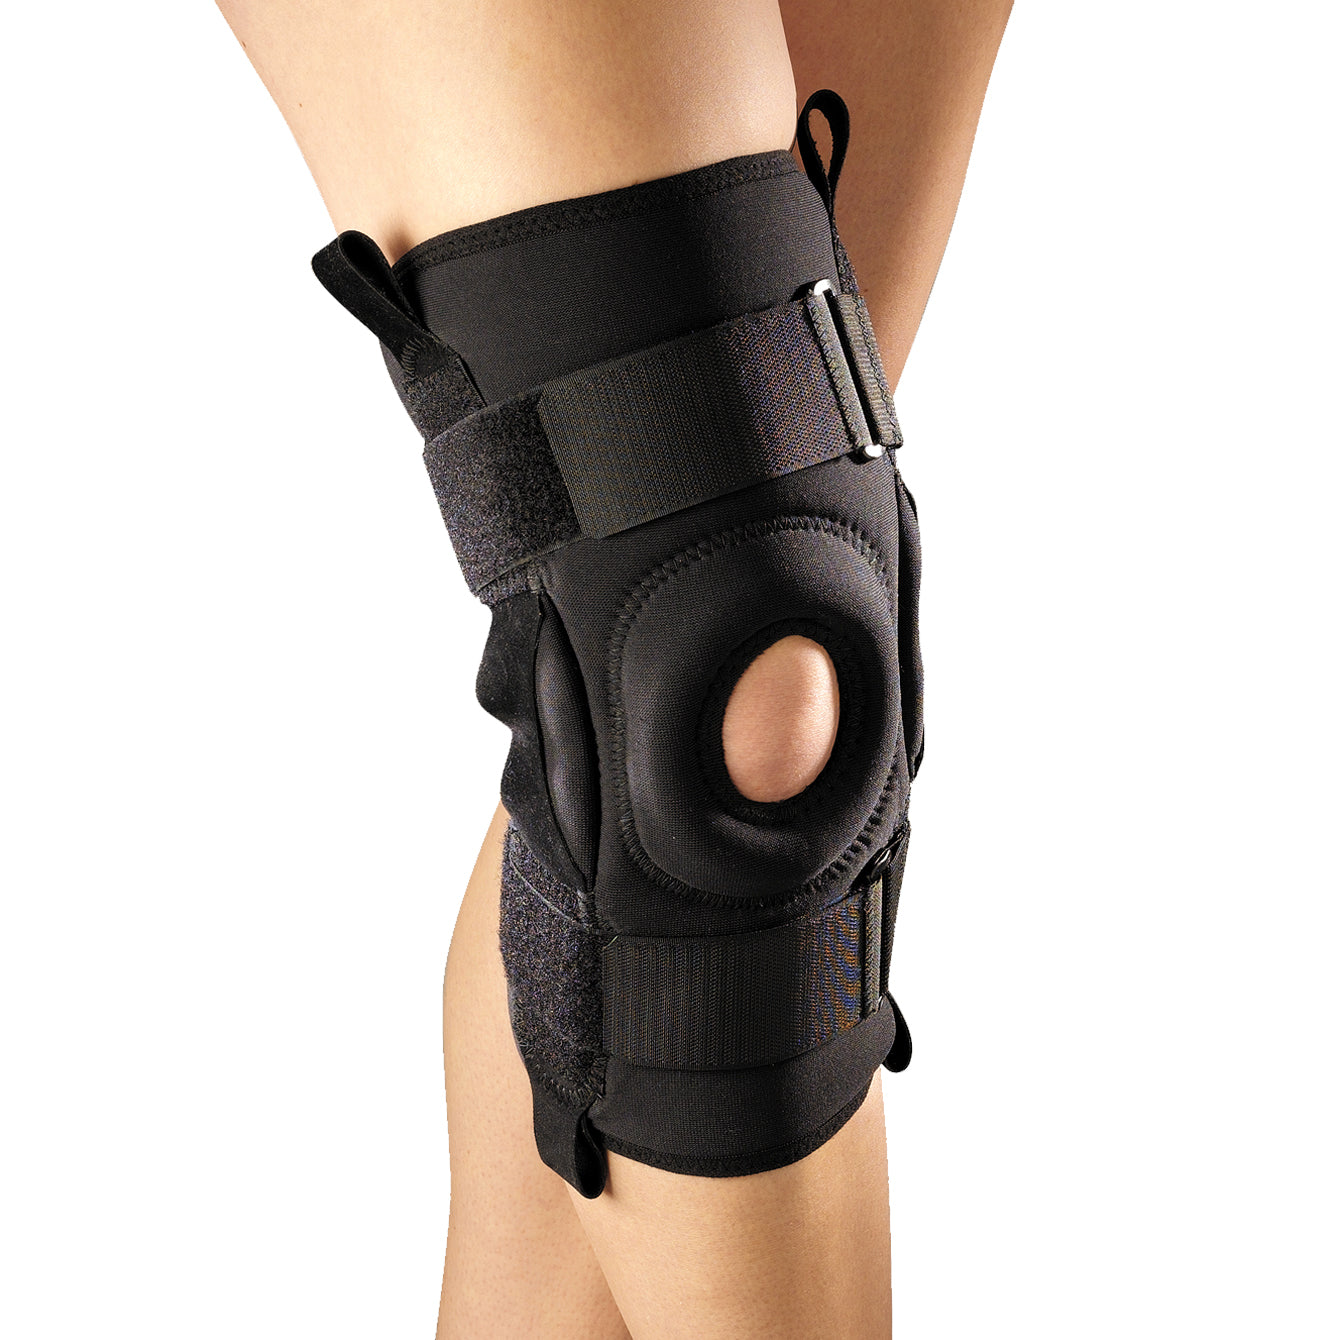 --Front of ORTHOTEX KNEE STABILIZER - ROM HINGED BARS--